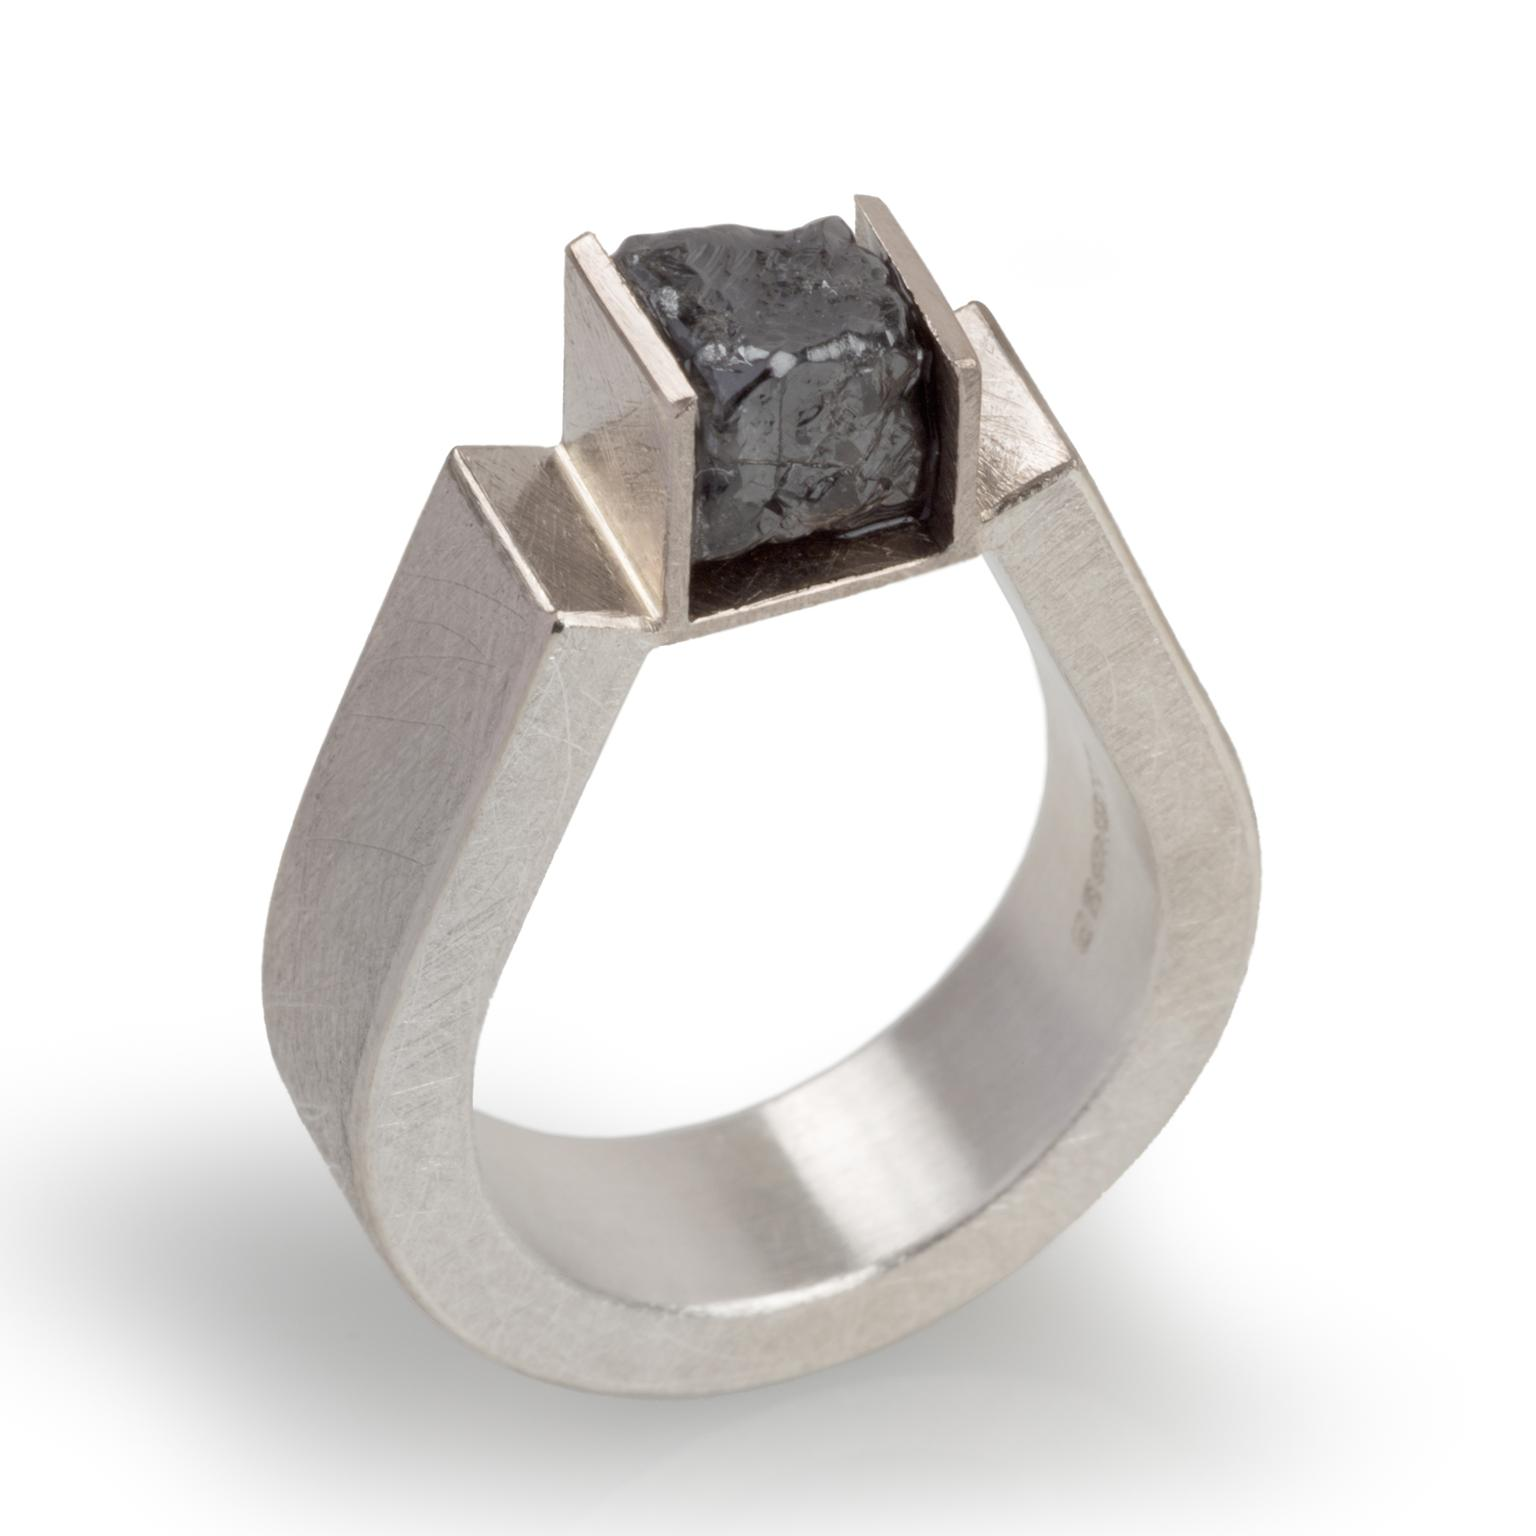 Rough diamond cube ring by Josef Koppmann